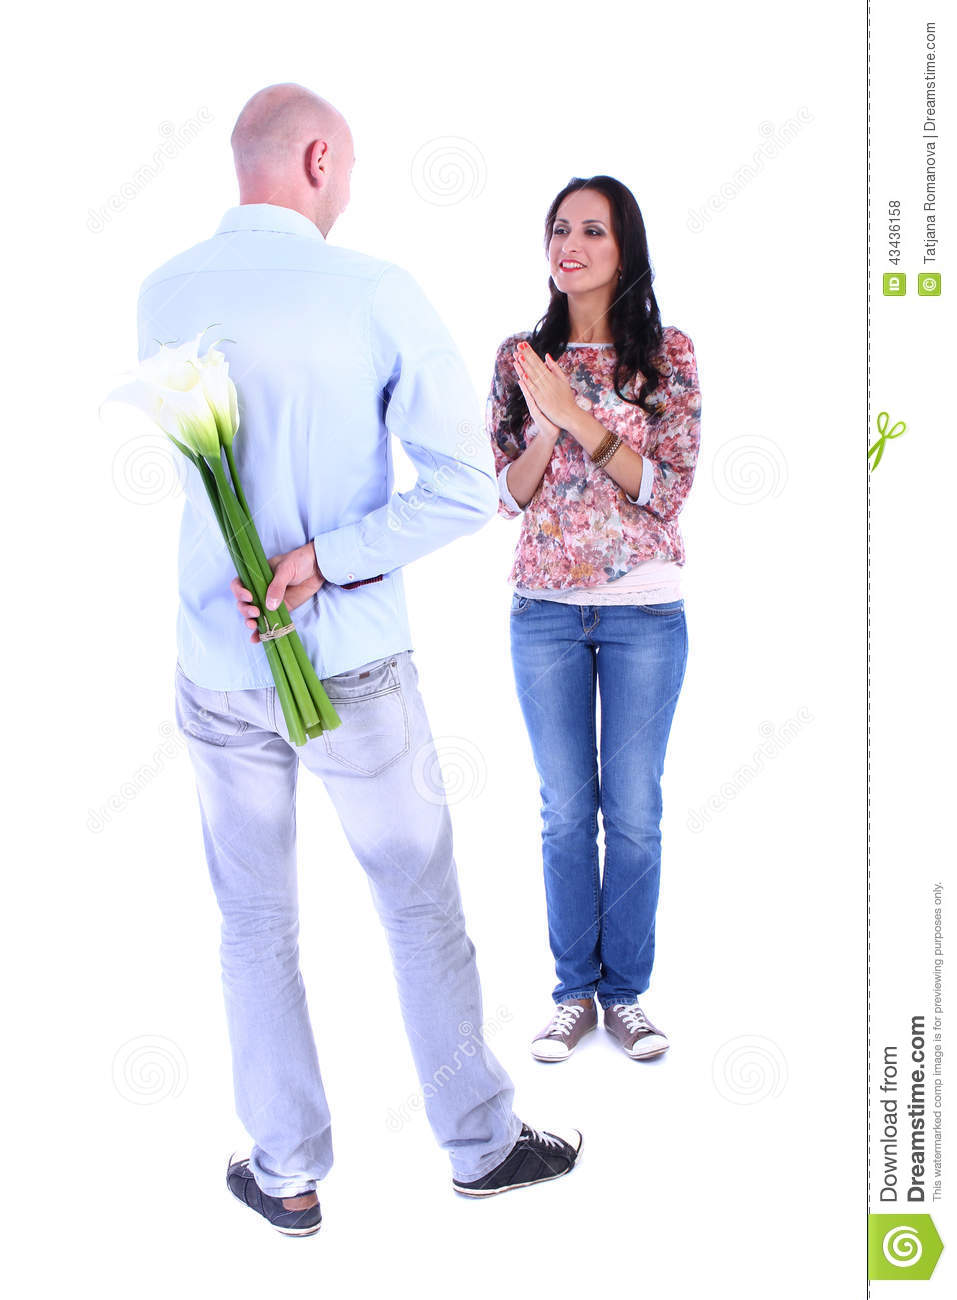 The young man gives his girlfriend bouquet of callas